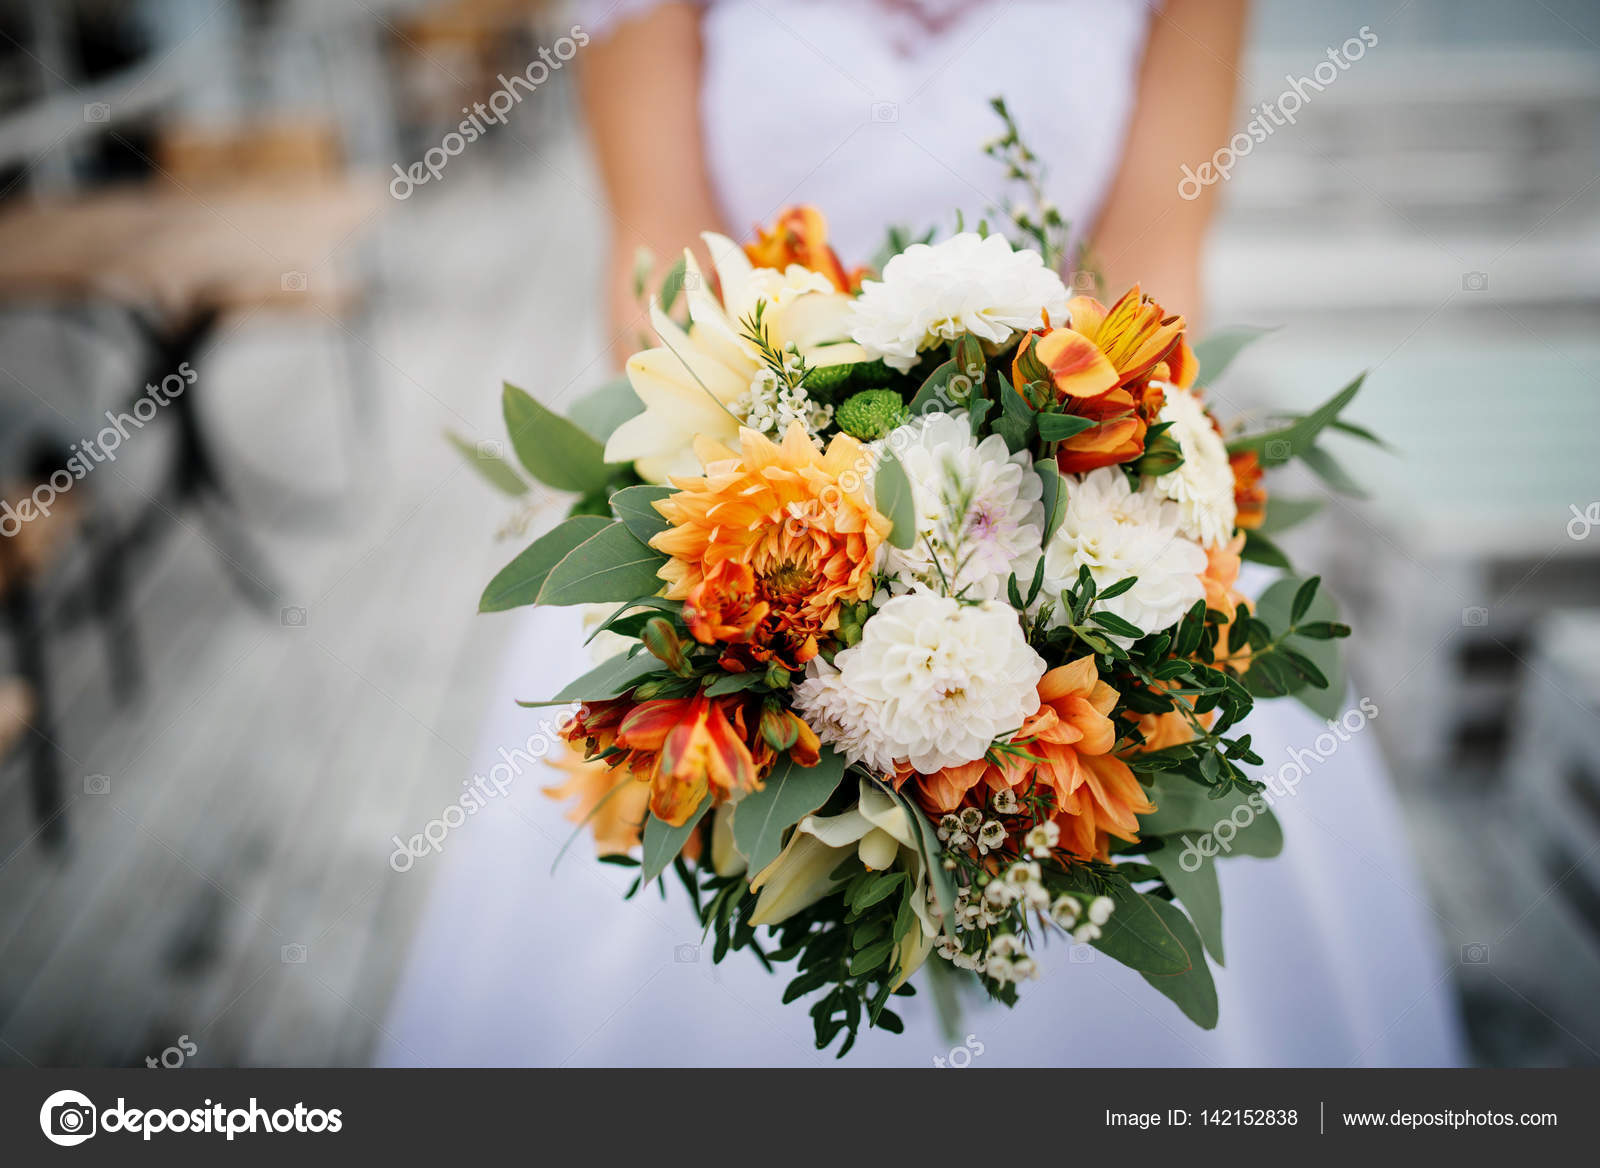 Elegant Orange And White Wedding Bouquet At Hands Of Bride Stock